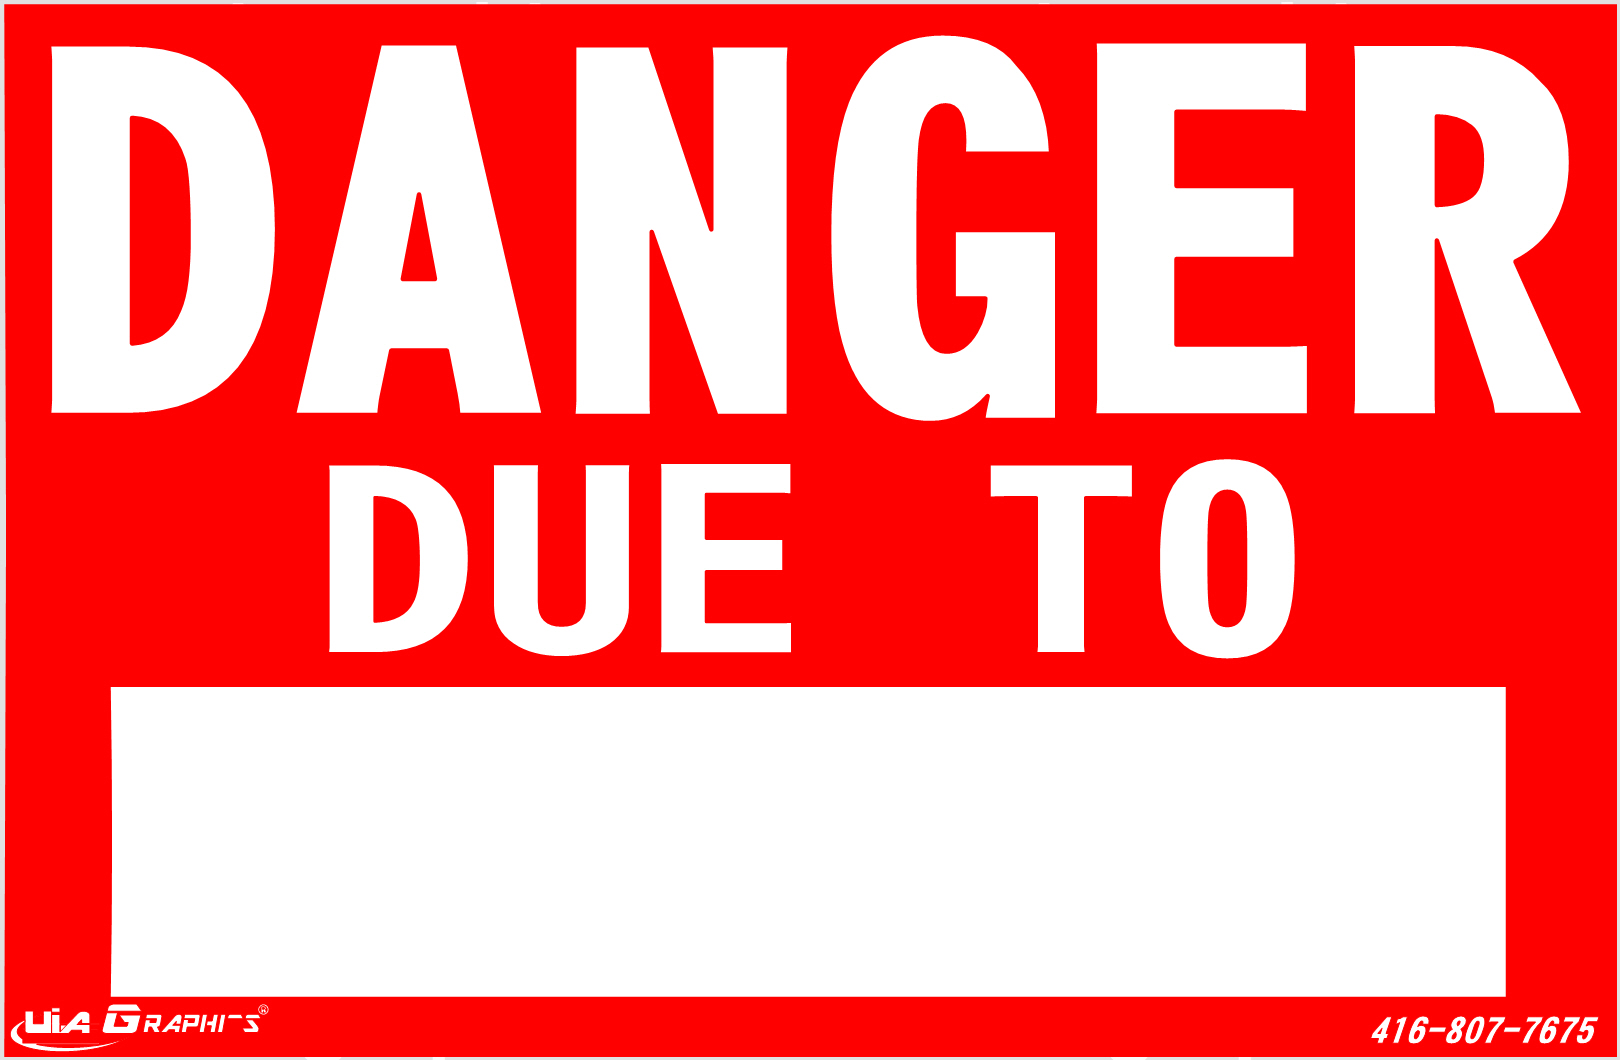 DANGER DUE TO SIGN | UiA Graphics